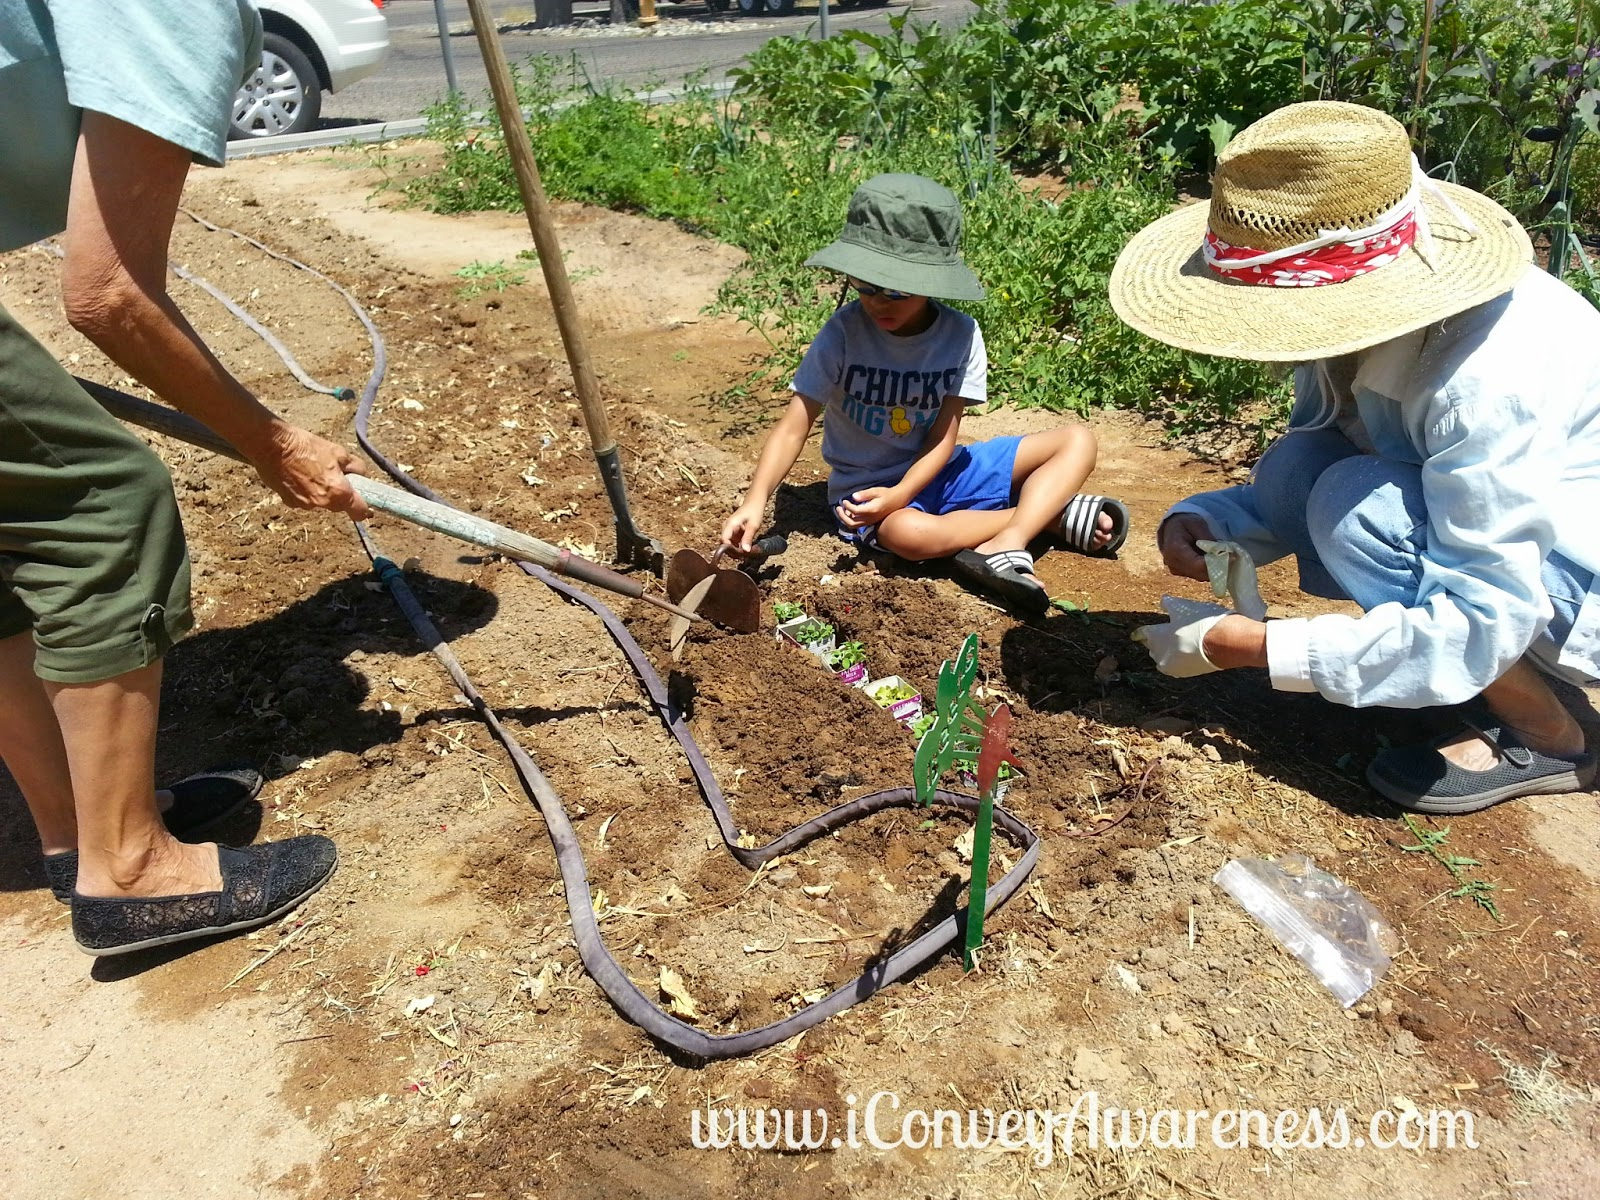 Conveying Awareness with Jessica David: Community Garden and More ...